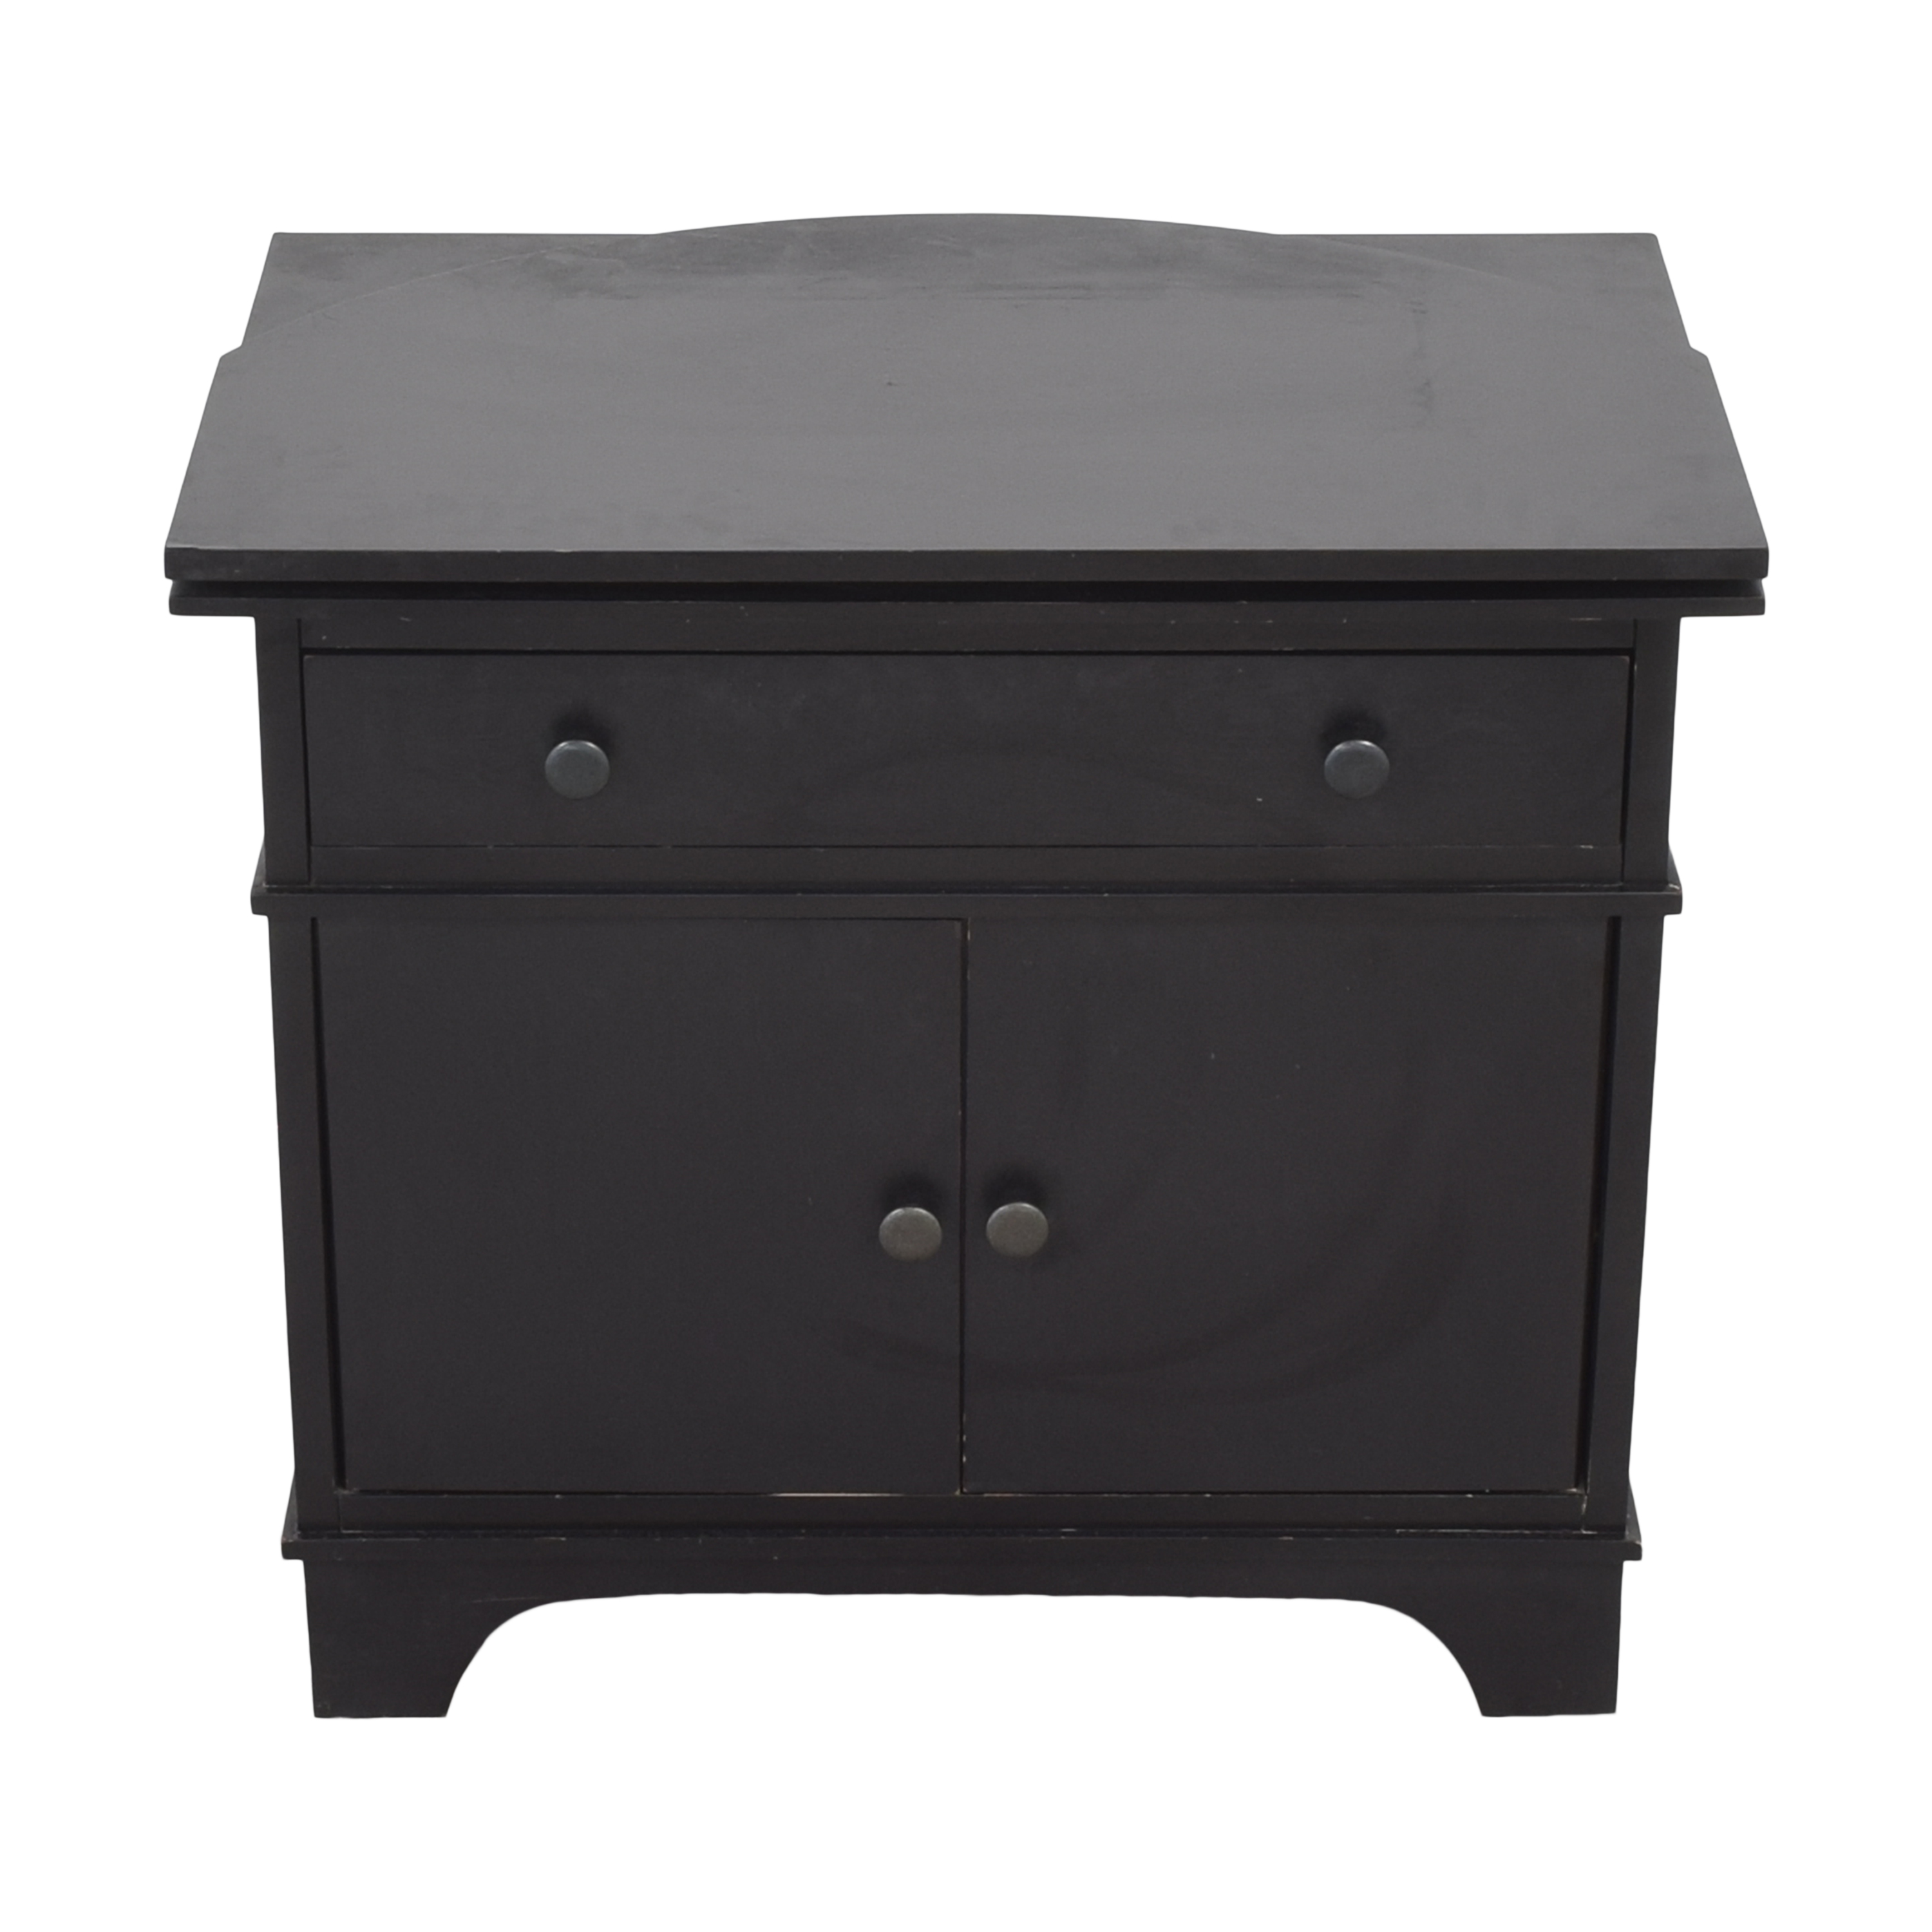 Pottery Barn Pottery Barn Cabot Swivel Media Console for sale